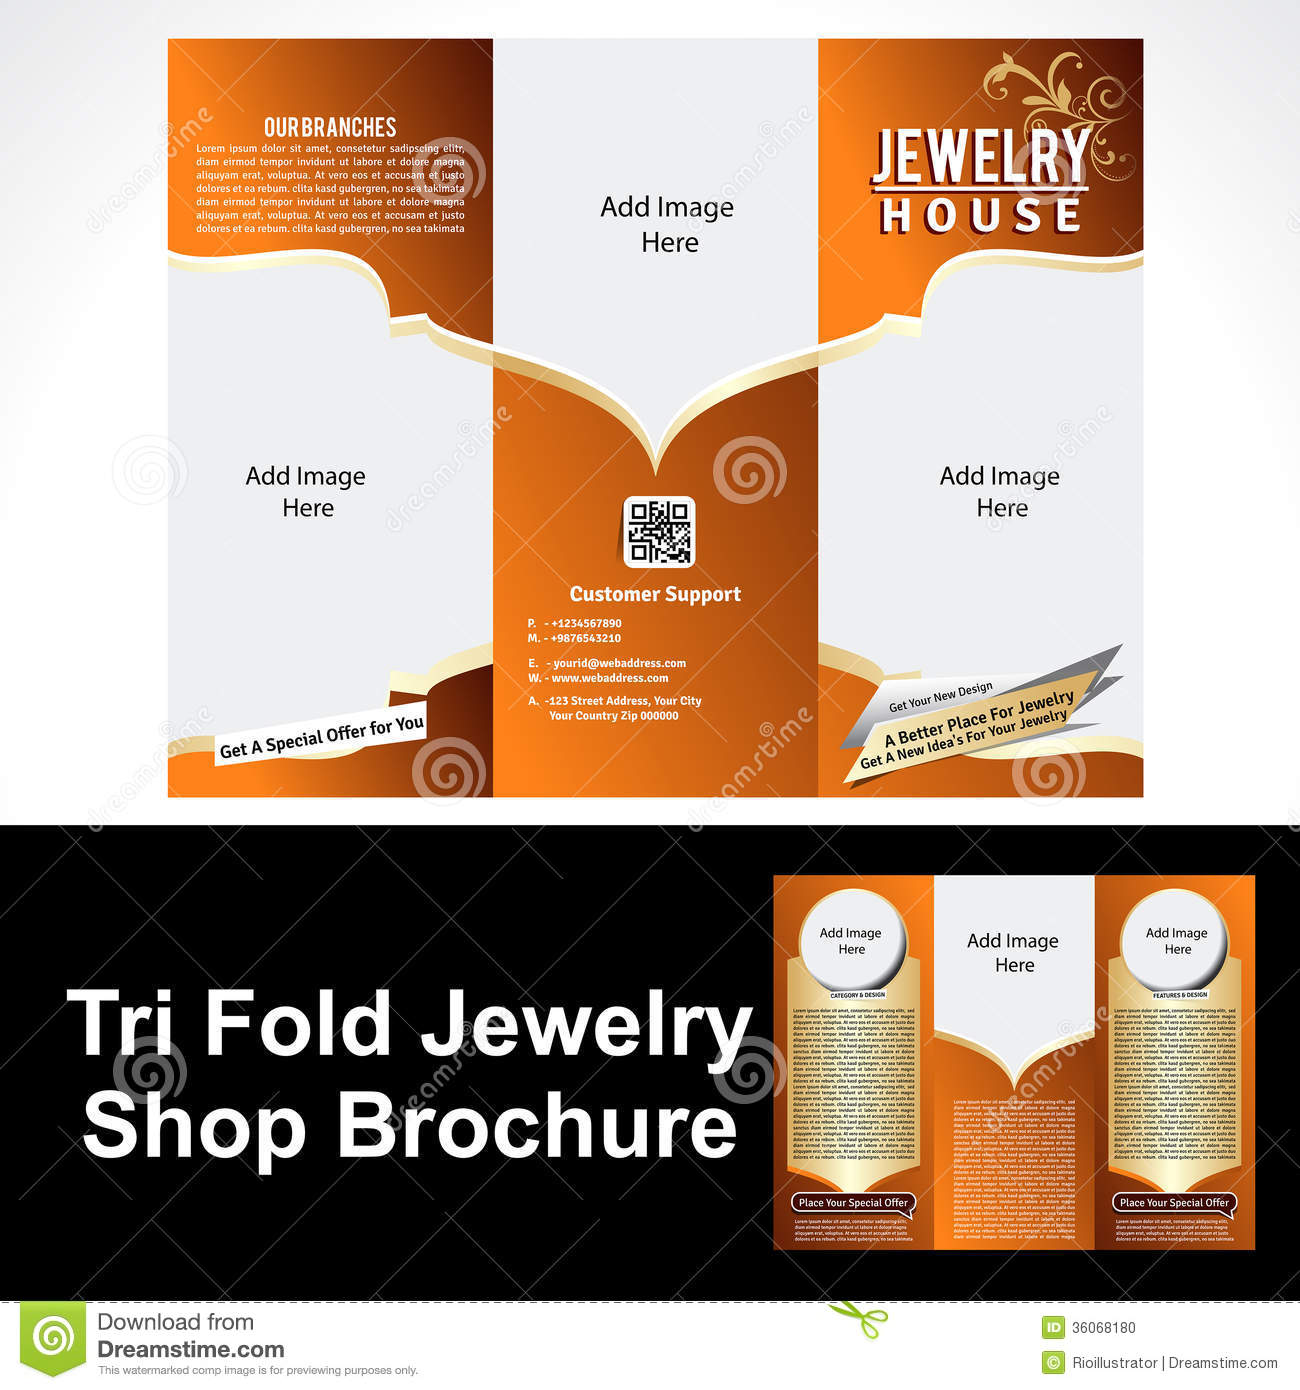 2017 Bakery Business Plan In Nigeria Pdf Sample Template Tril Fold Jewelry Shop Brochure Stock Photo Image 36068180